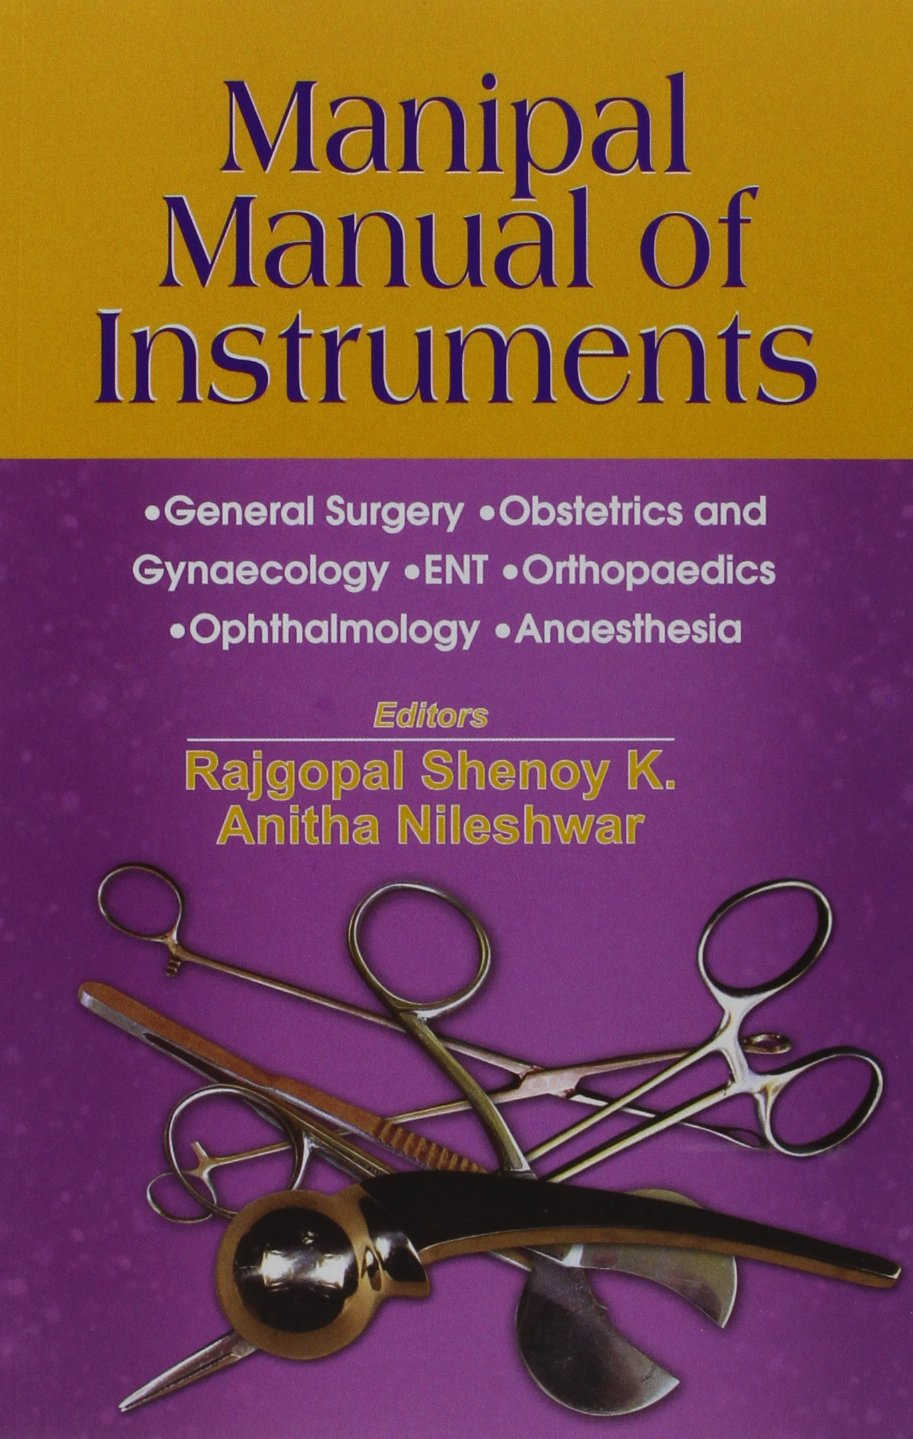 Buy Manipal Manual of Instruments Book Online at Low Prices in India | Manipal  Manual of Instruments Reviews & Ratings - Amazon.in